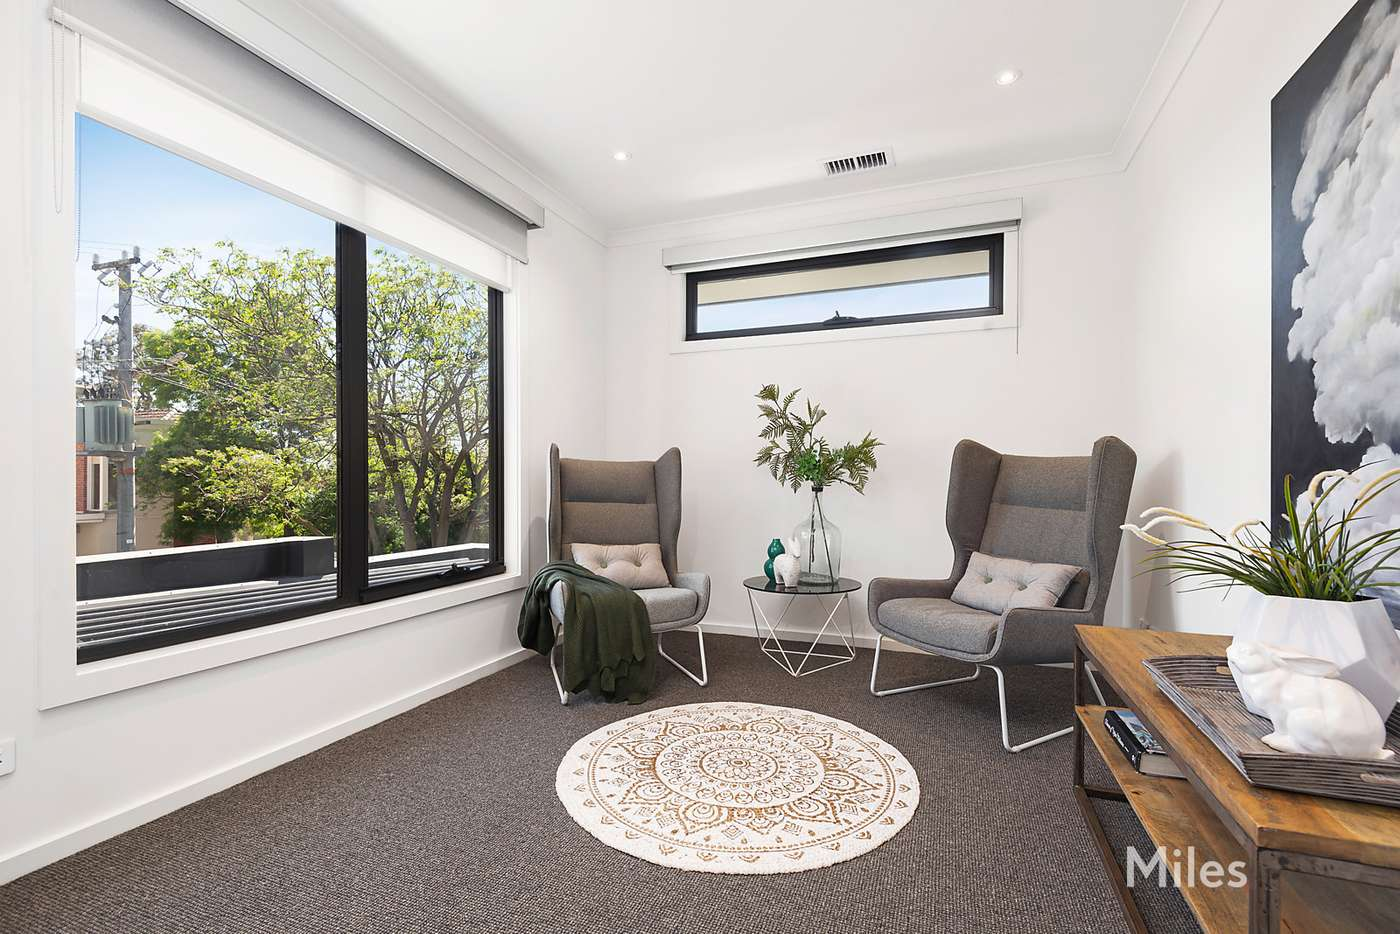 Fifth view of Homely house listing, 2 Melcombe Road, Ivanhoe VIC 3079